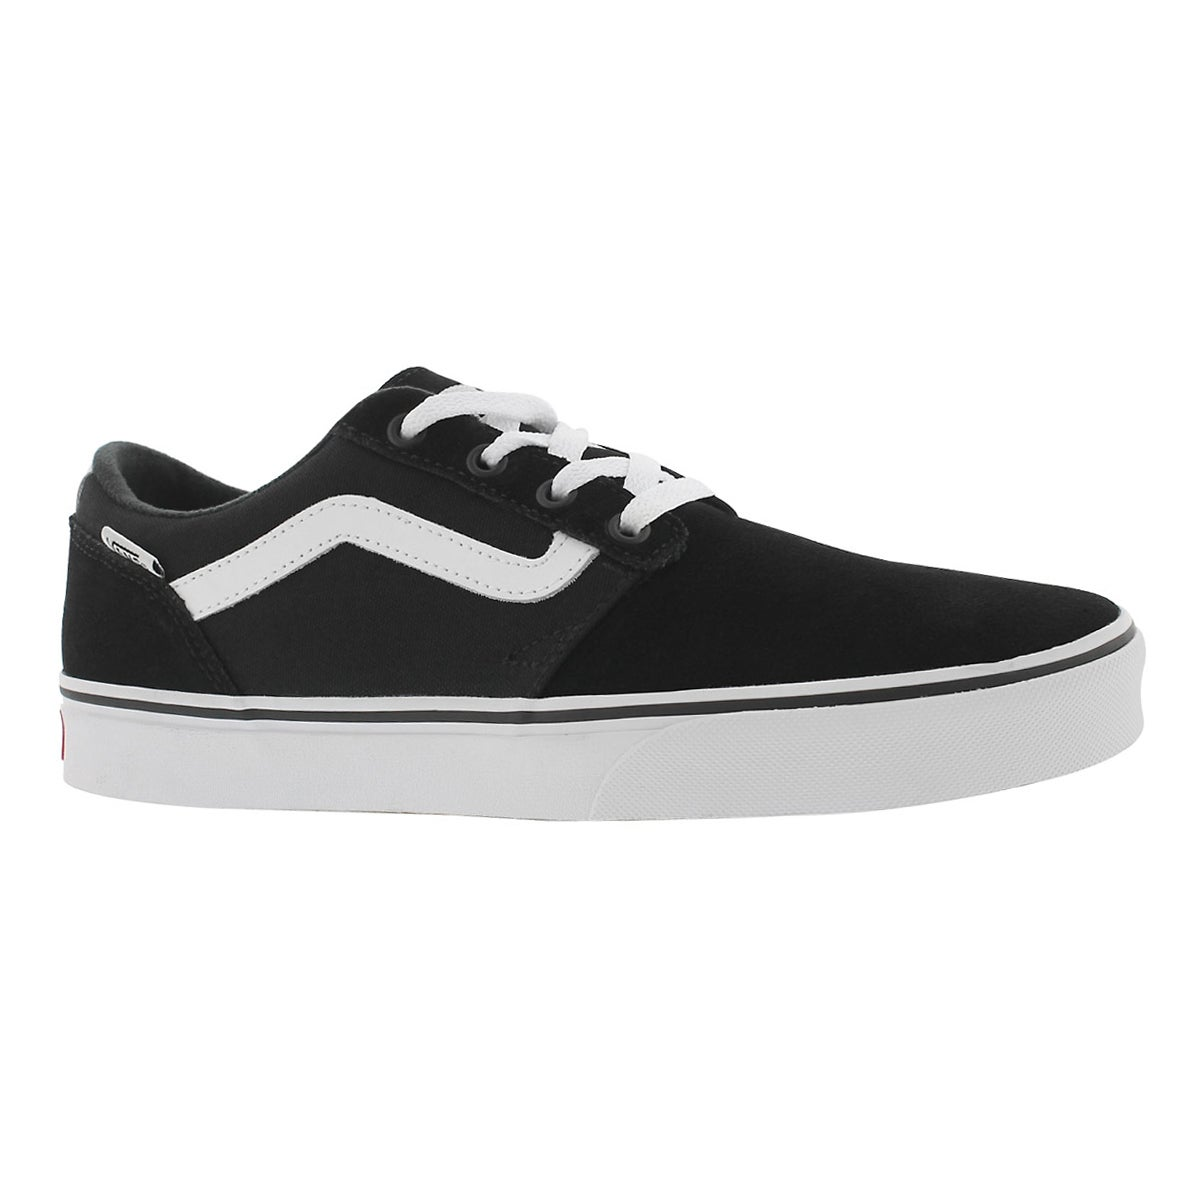 Men's CHAPMAN STRIPE black/white sneakers